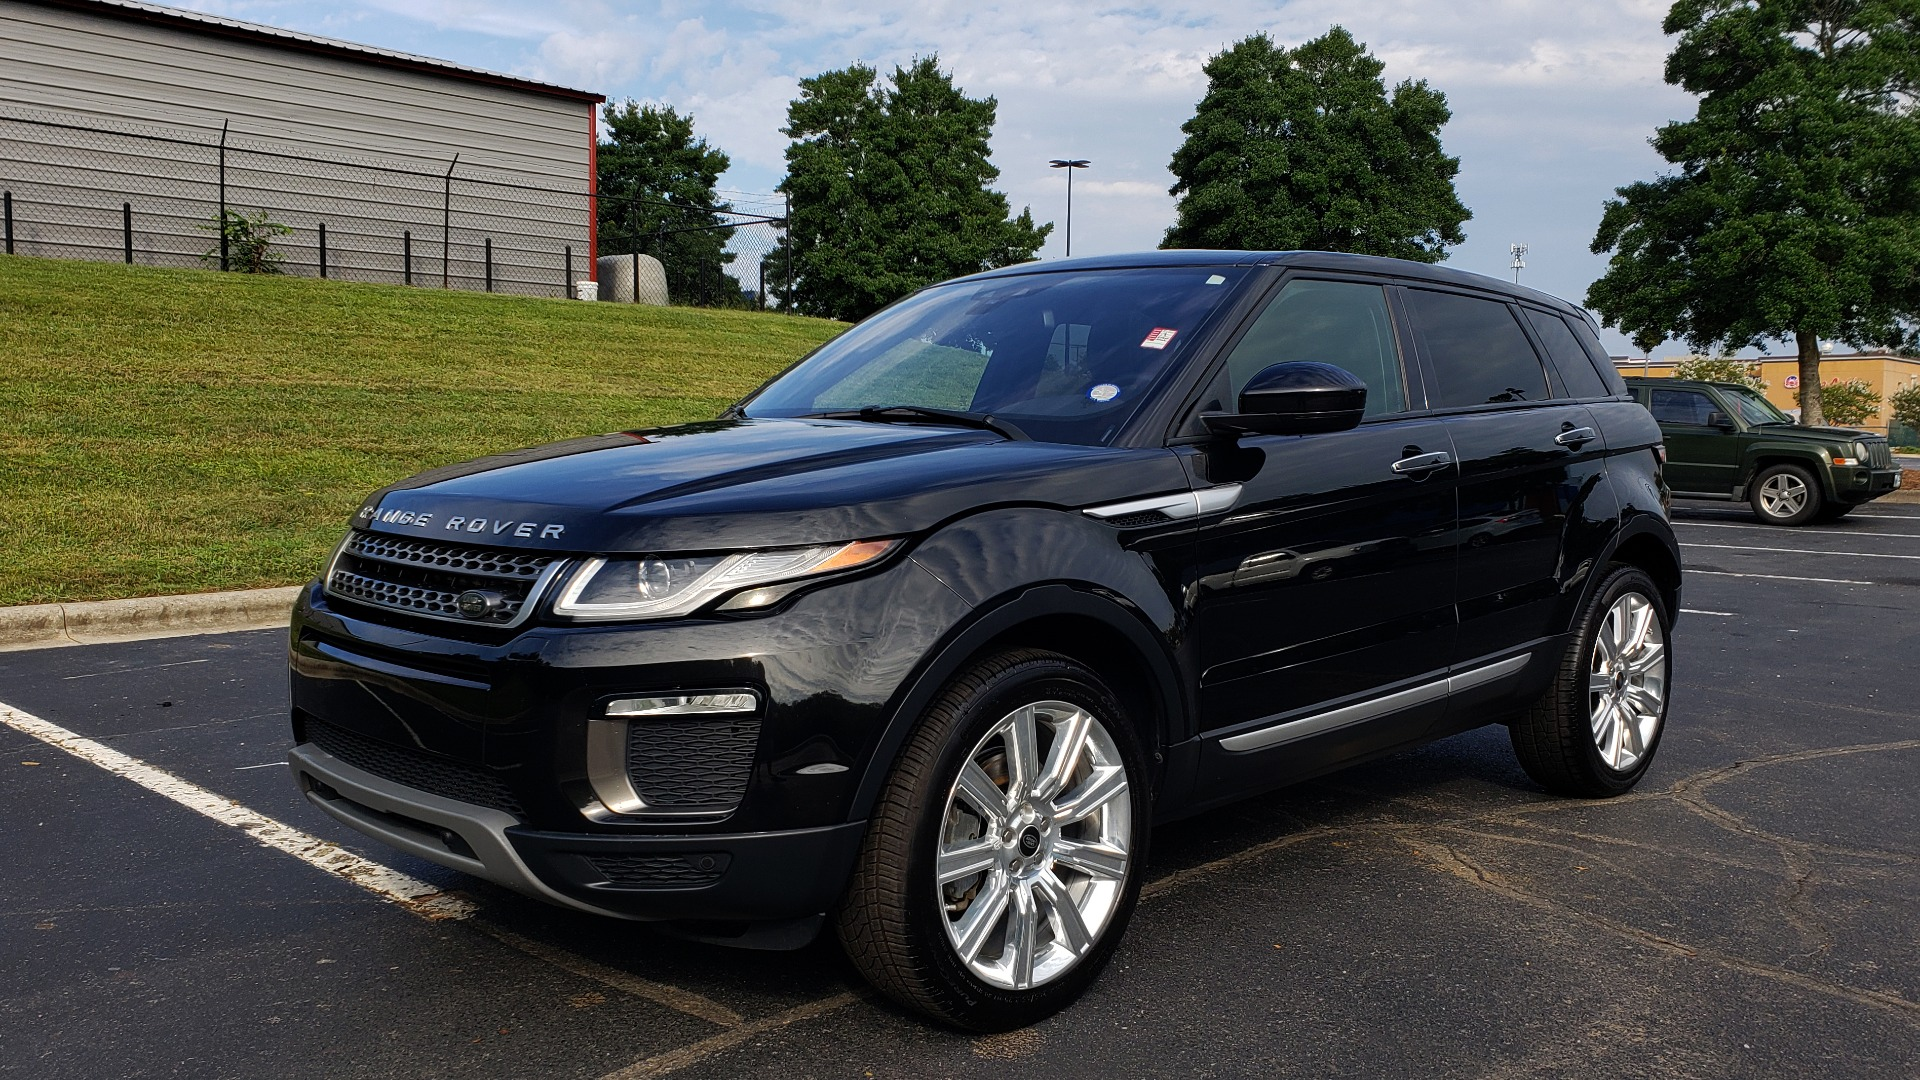 Used 2016 Land Rover RANGE ROVER EVOQUE HSE / AWD / NAV / MERIDIAN / PANO-ROOF / REARVIEW for sale Sold at Formula Imports in Charlotte NC 28227 1